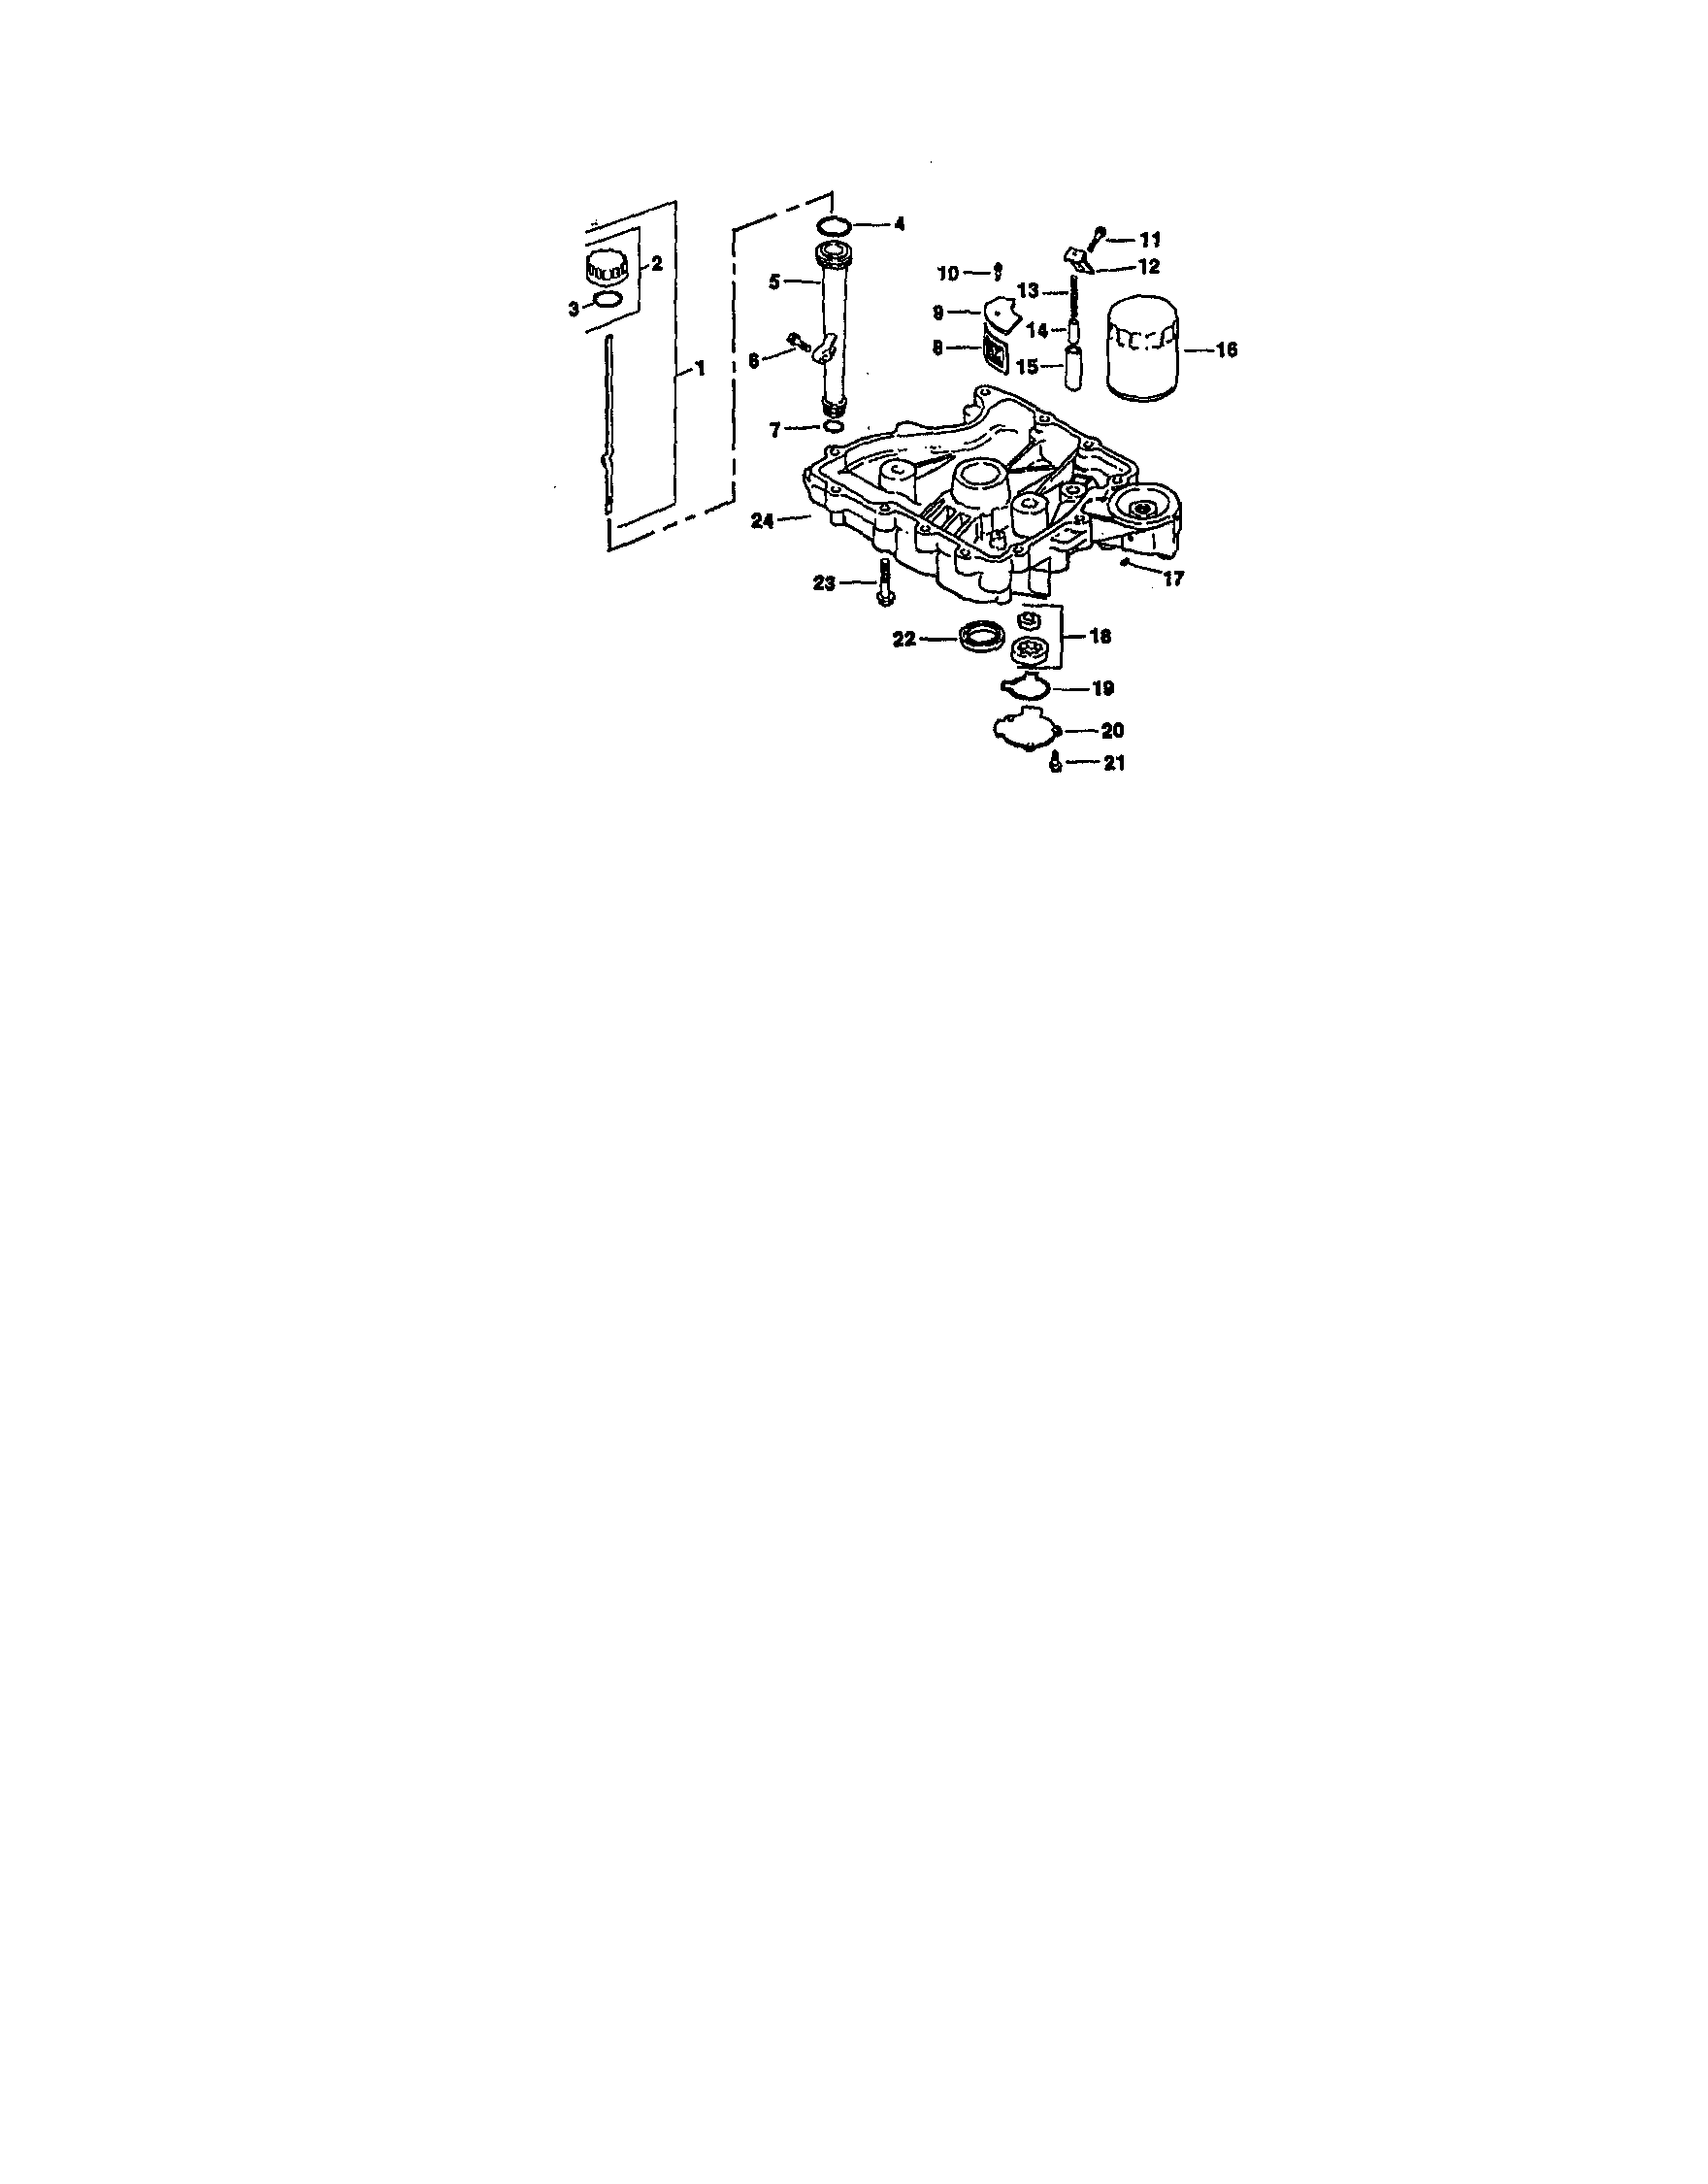 Kohler model CV15S-41567 engine genuine parts